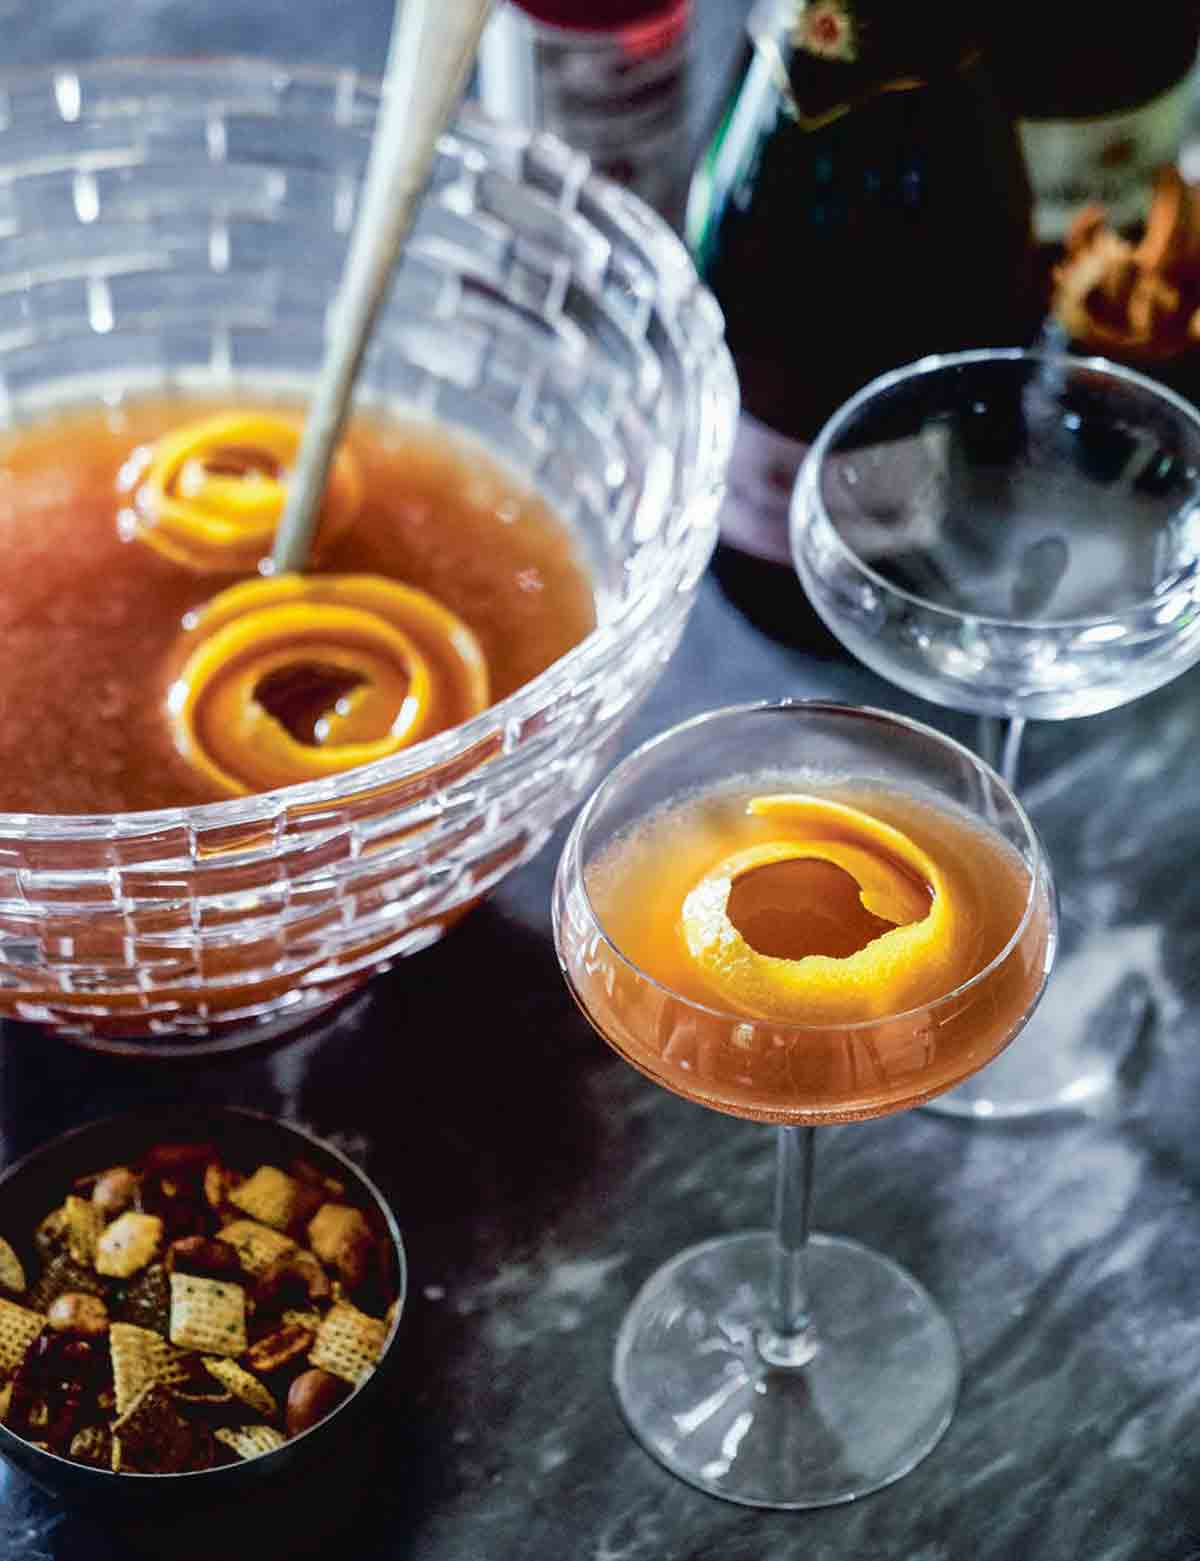 A glass punch bowl partially filled with maybelle punch and orange peel garnish, and two coupe glasses alongside, one filled and one empty.